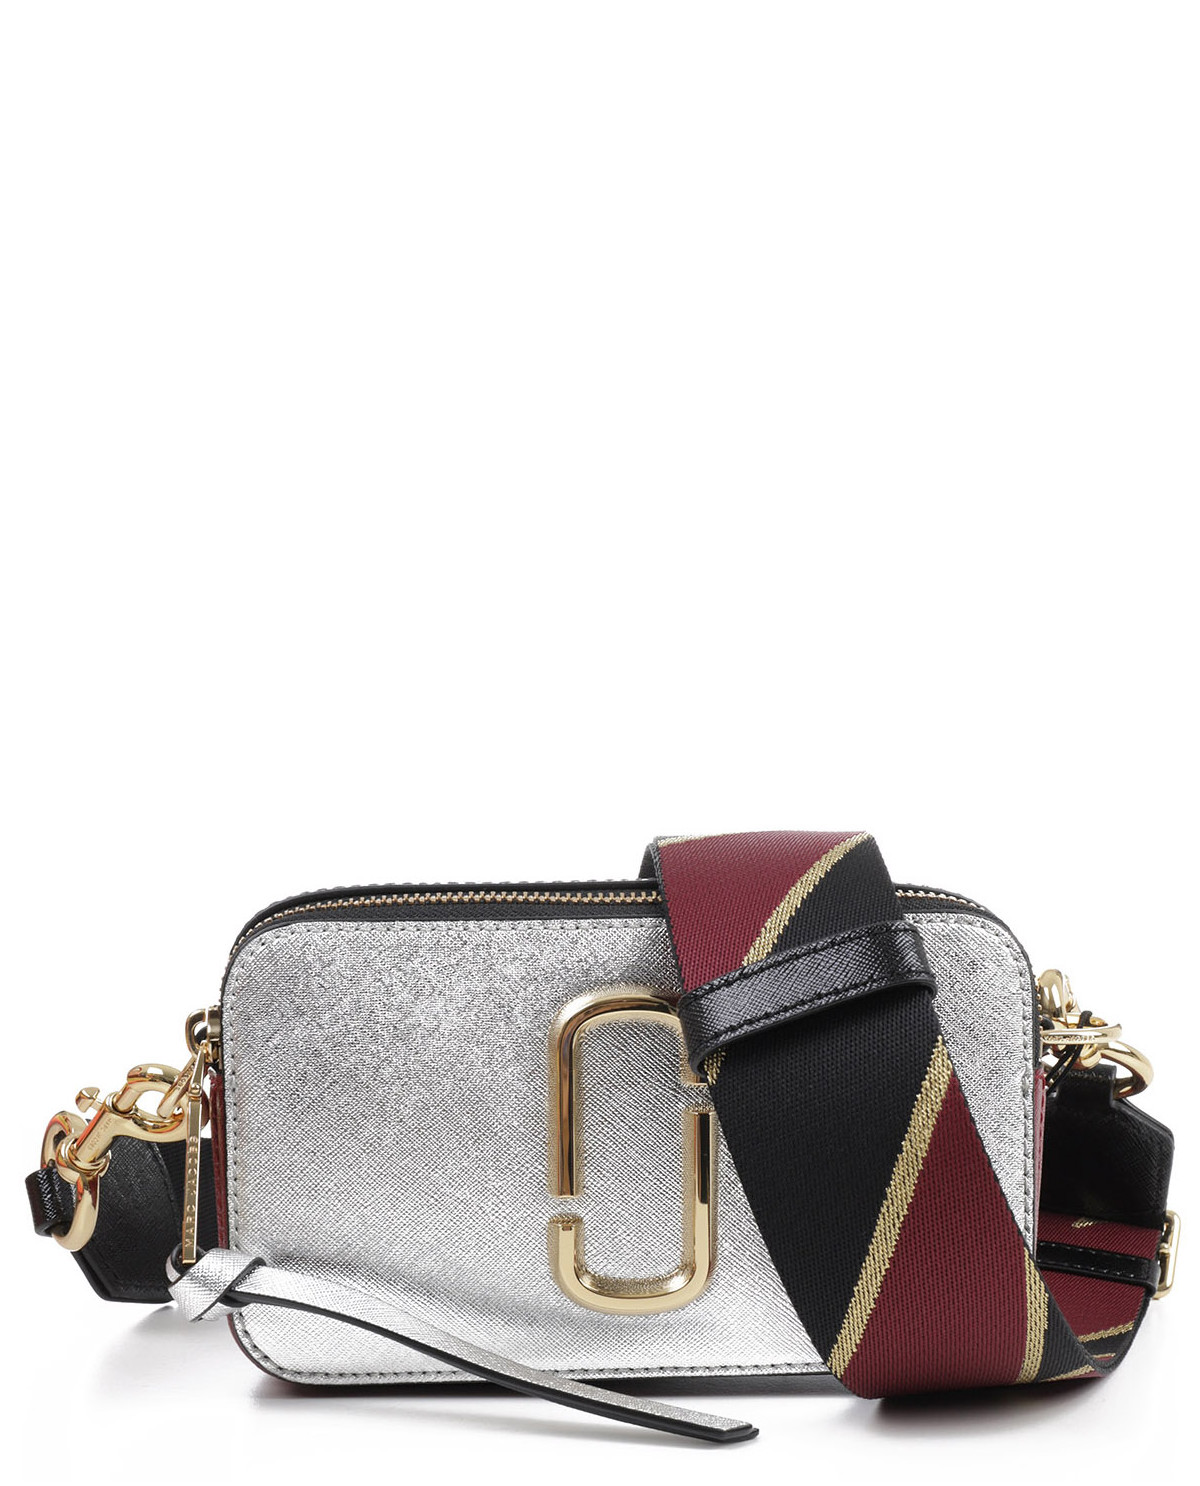 Marc Jacobs silver Snapshot